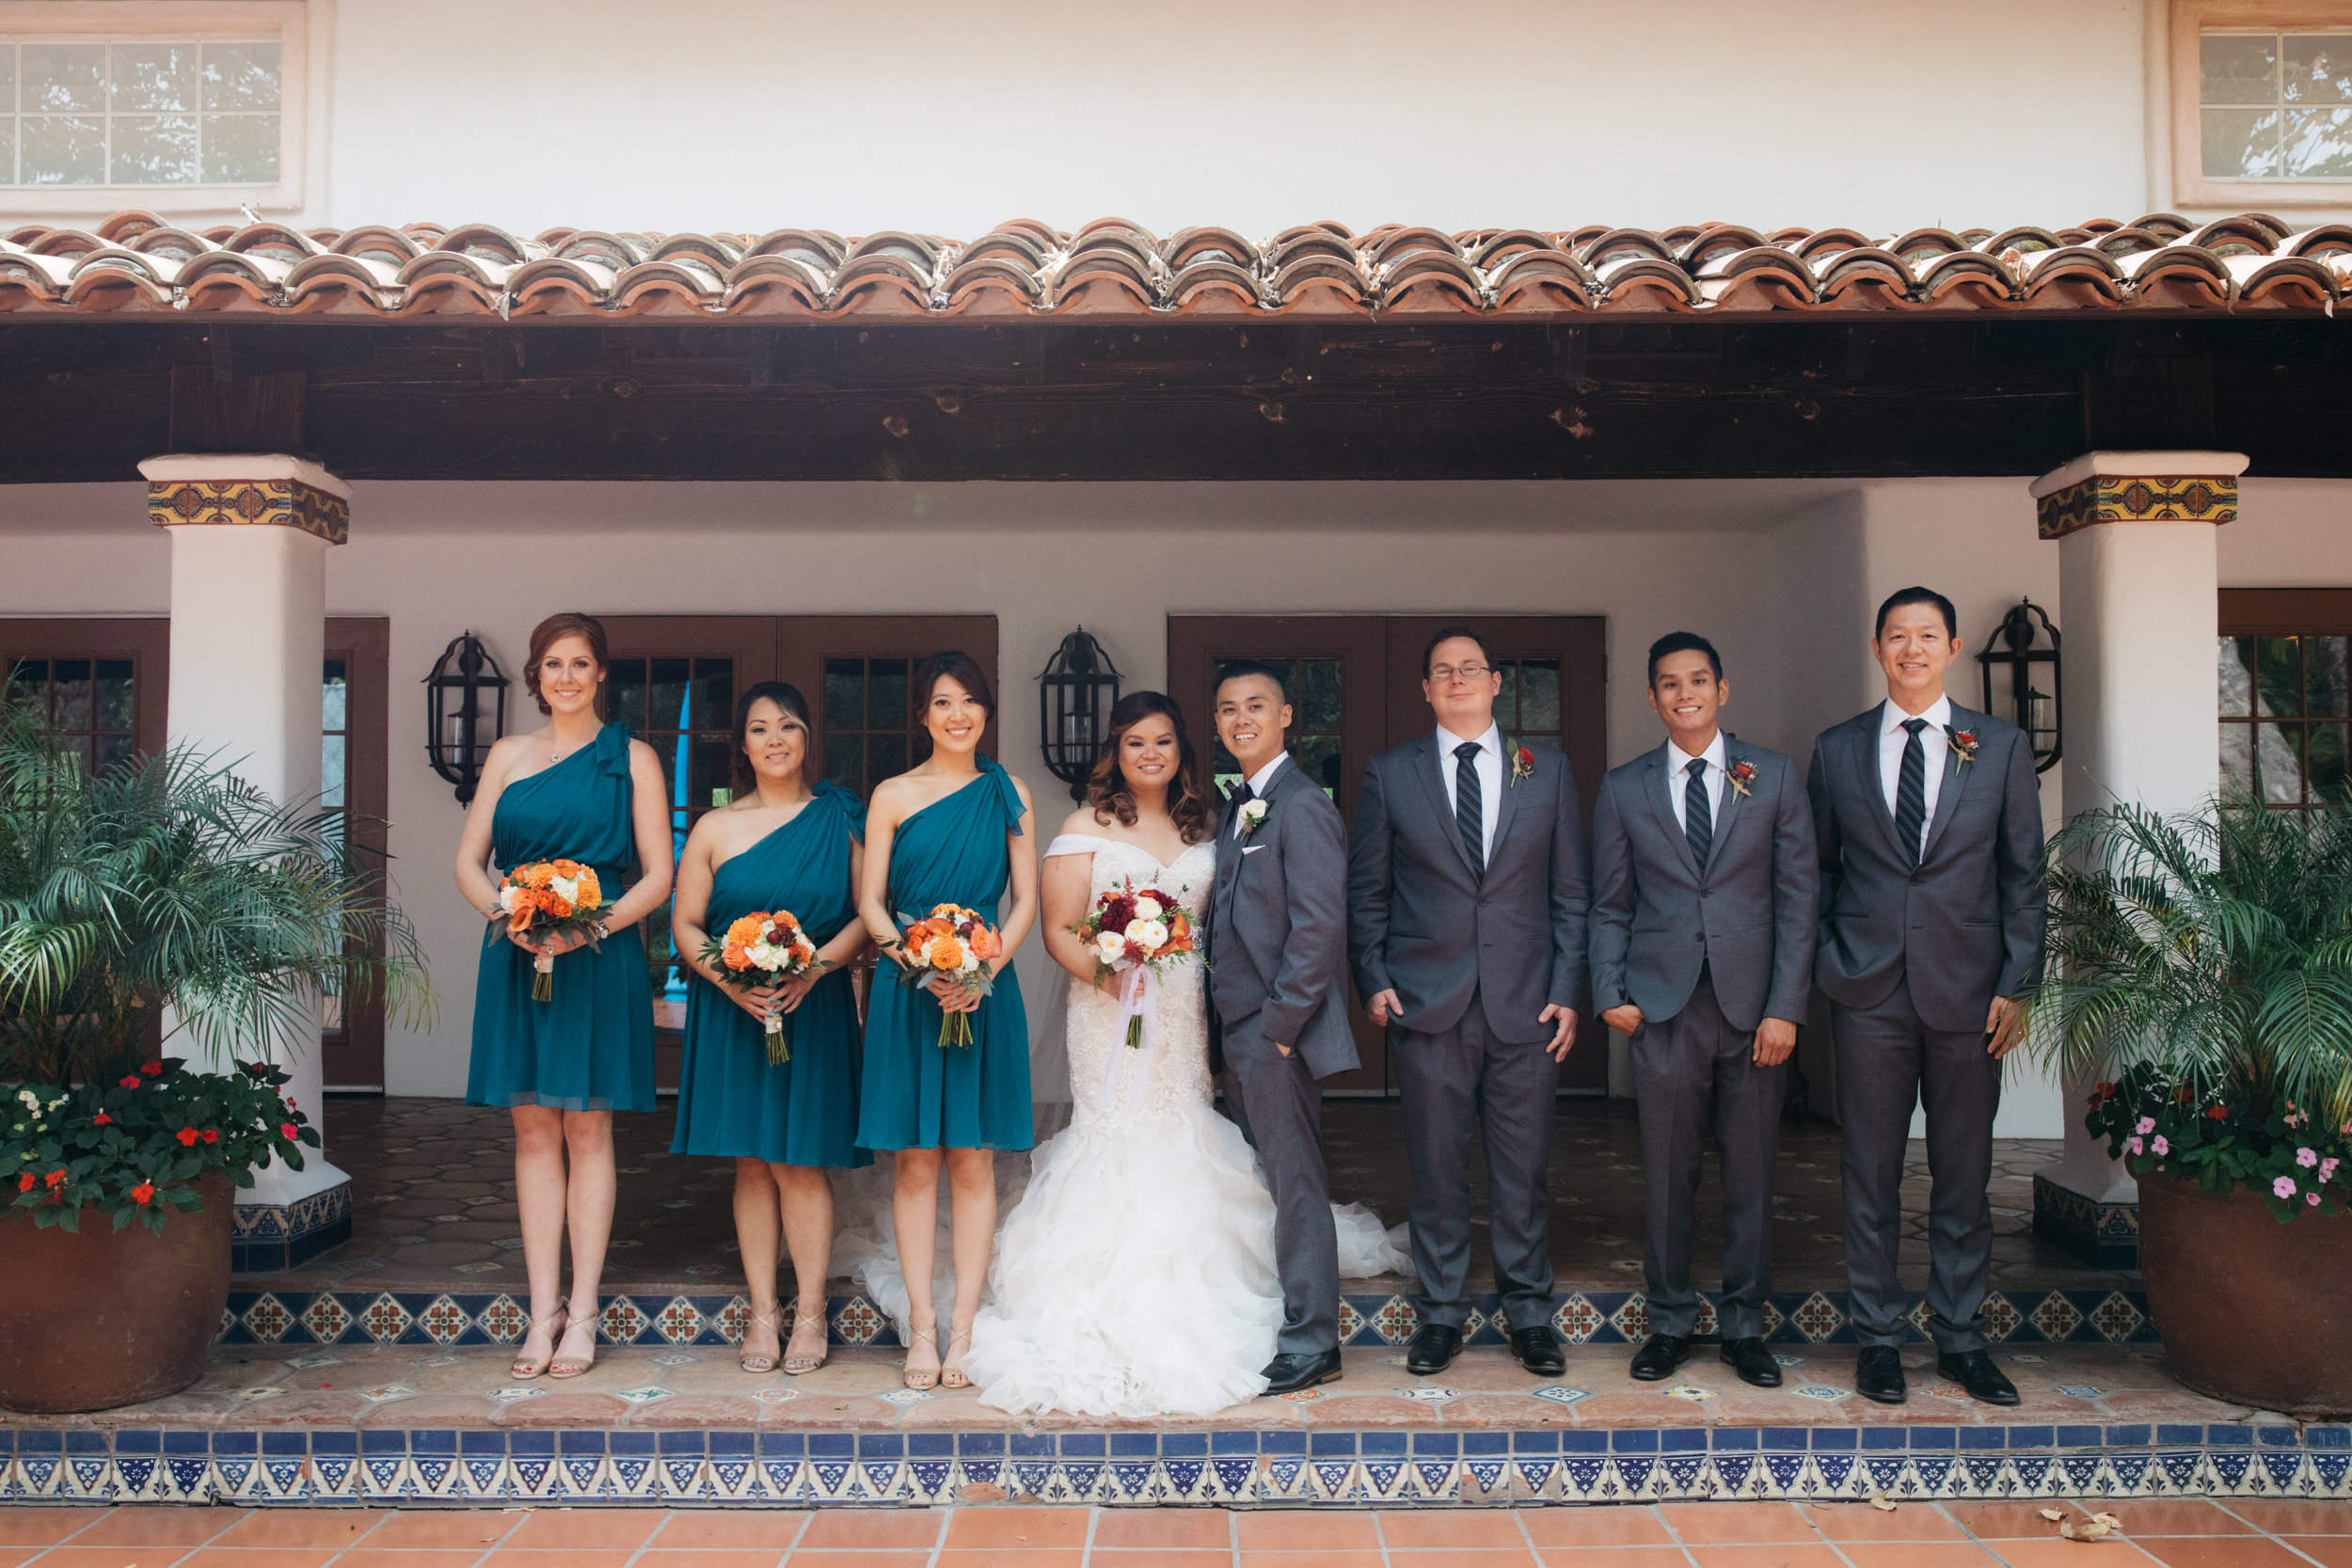 rancho-las-lomas-wedding-planner-best-wedding-planner-in-southern-california34.jpg